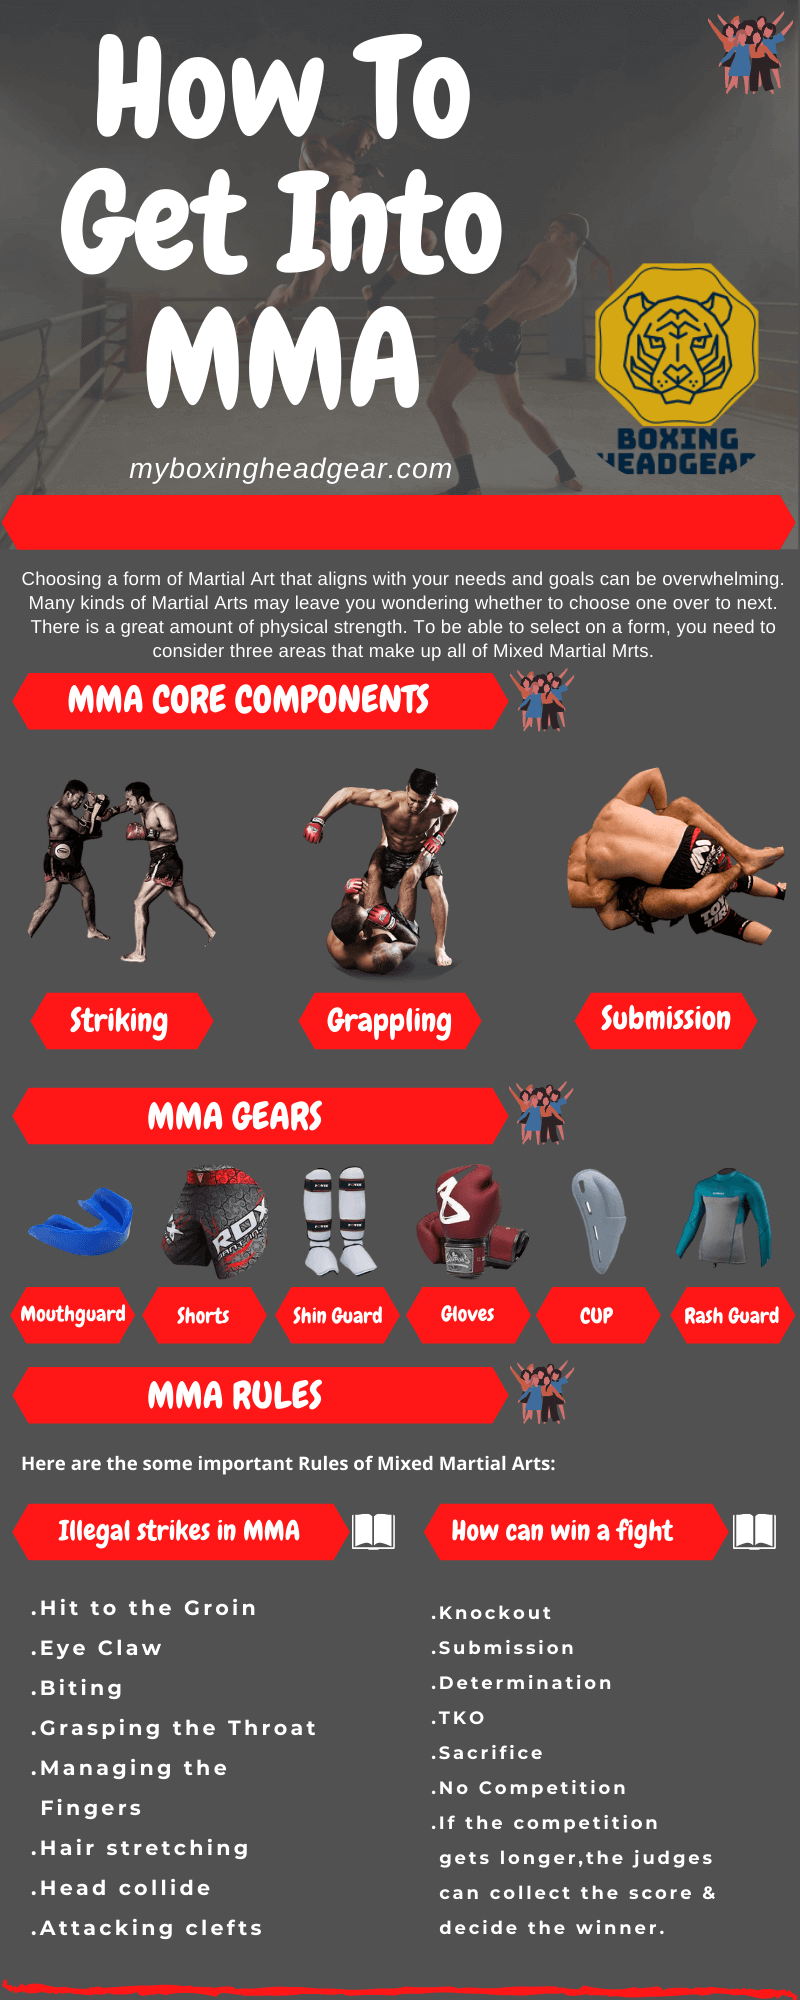 How to get into MMA info-graphics